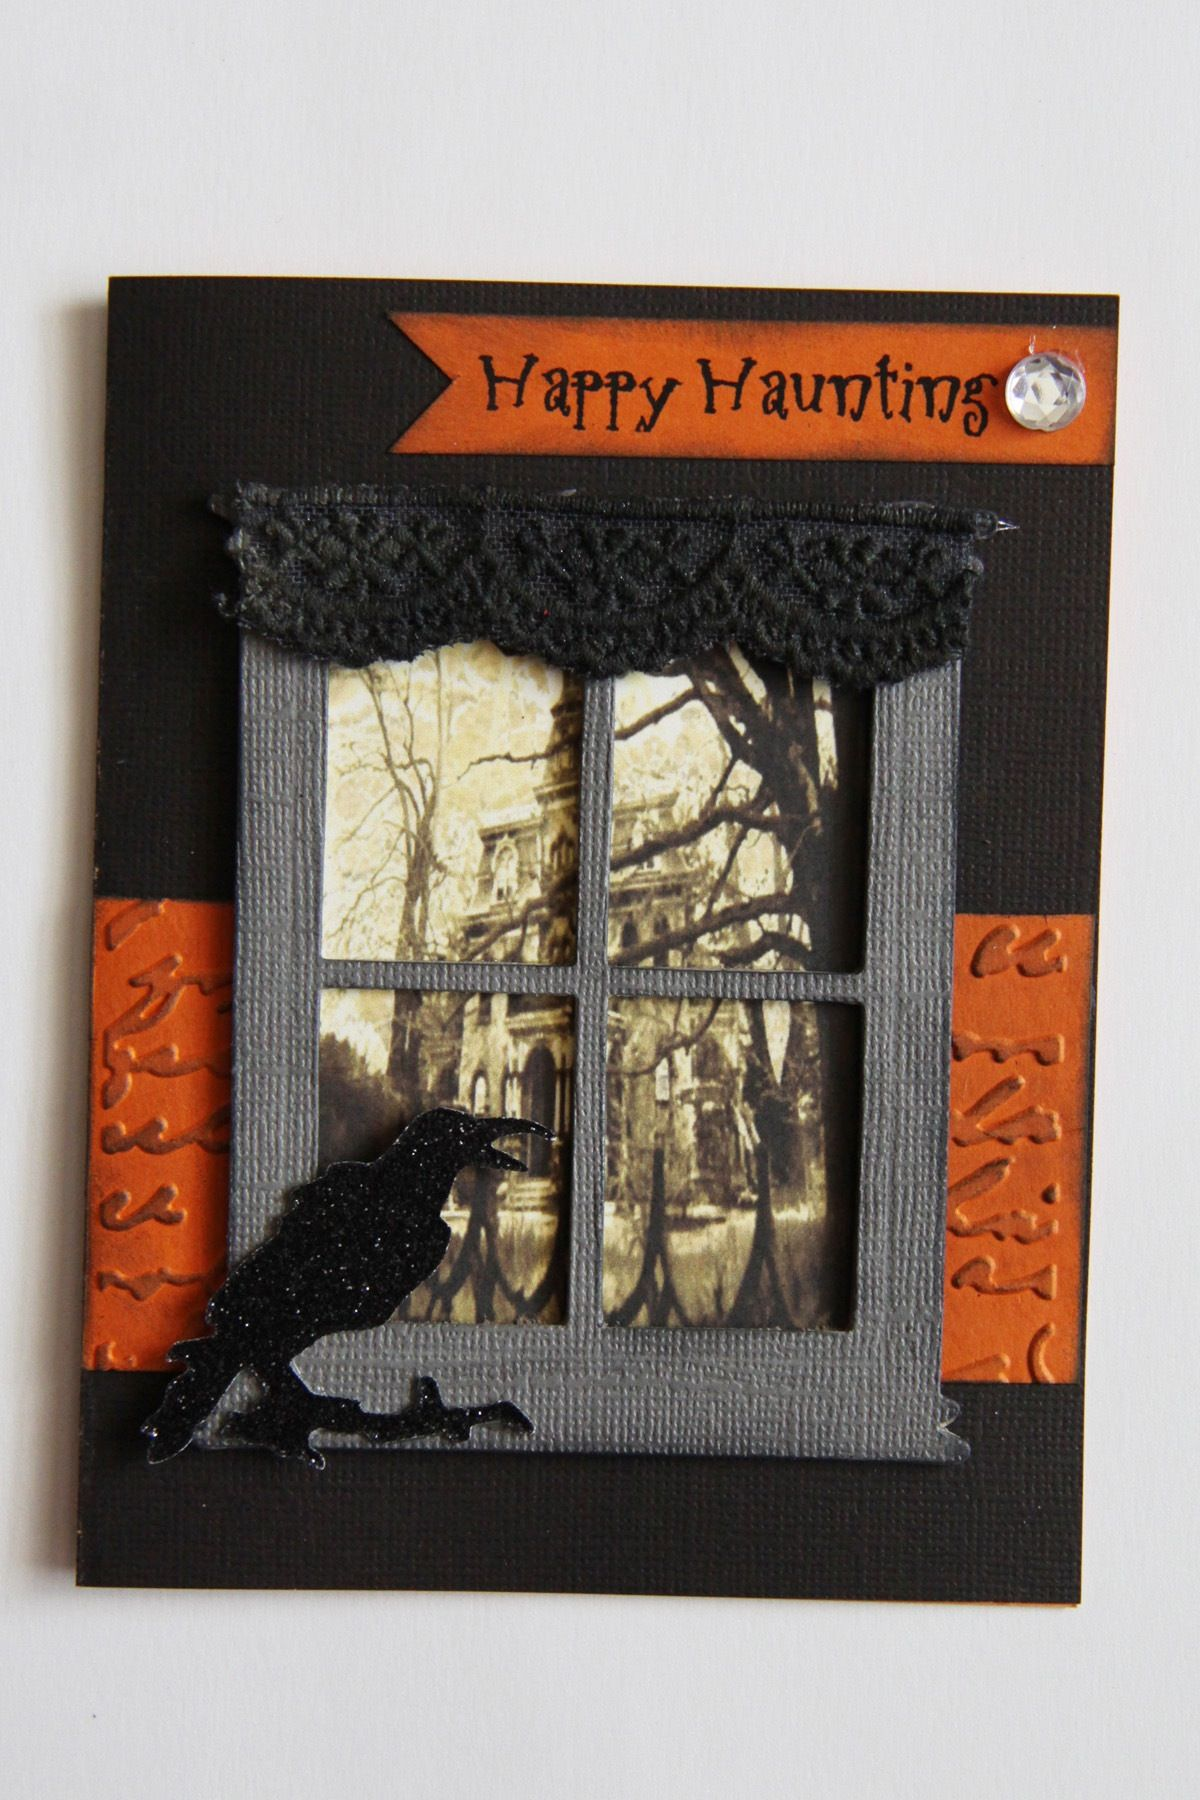 sizzix tim holtz window die happy haunting halloween card haunted house black raven lace. Black Bedroom Furniture Sets. Home Design Ideas